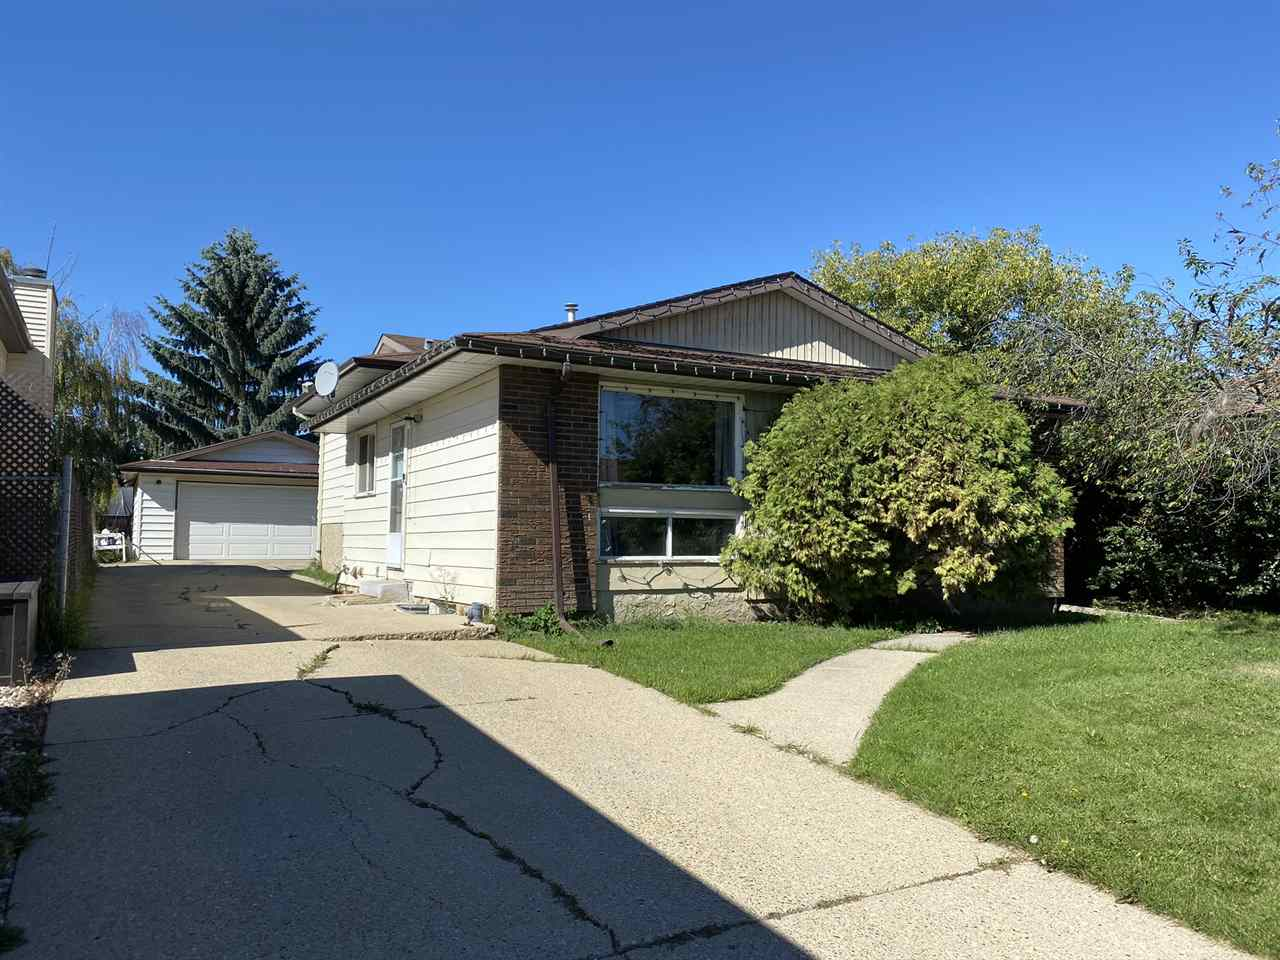 Awesome 4 split with parquet hardwood in the living room and dining room and ceramic flooring in kitchen and bathrooms. Features a large yard with double garage. Close to shopping, schools and public transportation. Rental income $1600 tenant pays utilities. Great potential!